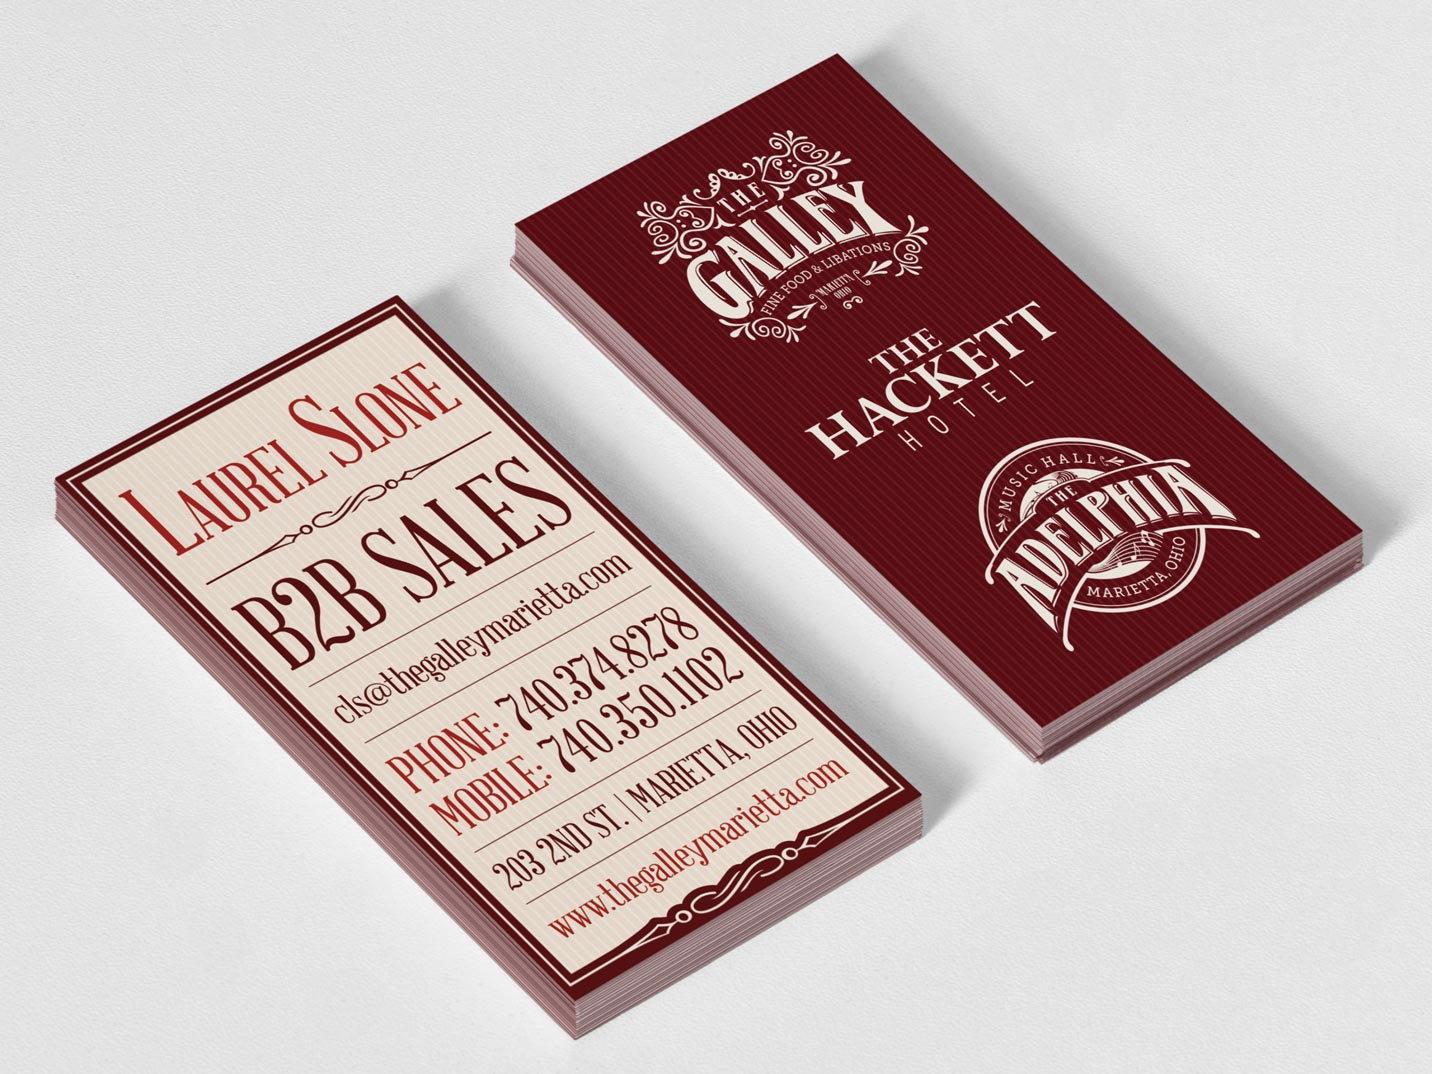 Galley Adelphia Hackett Branding